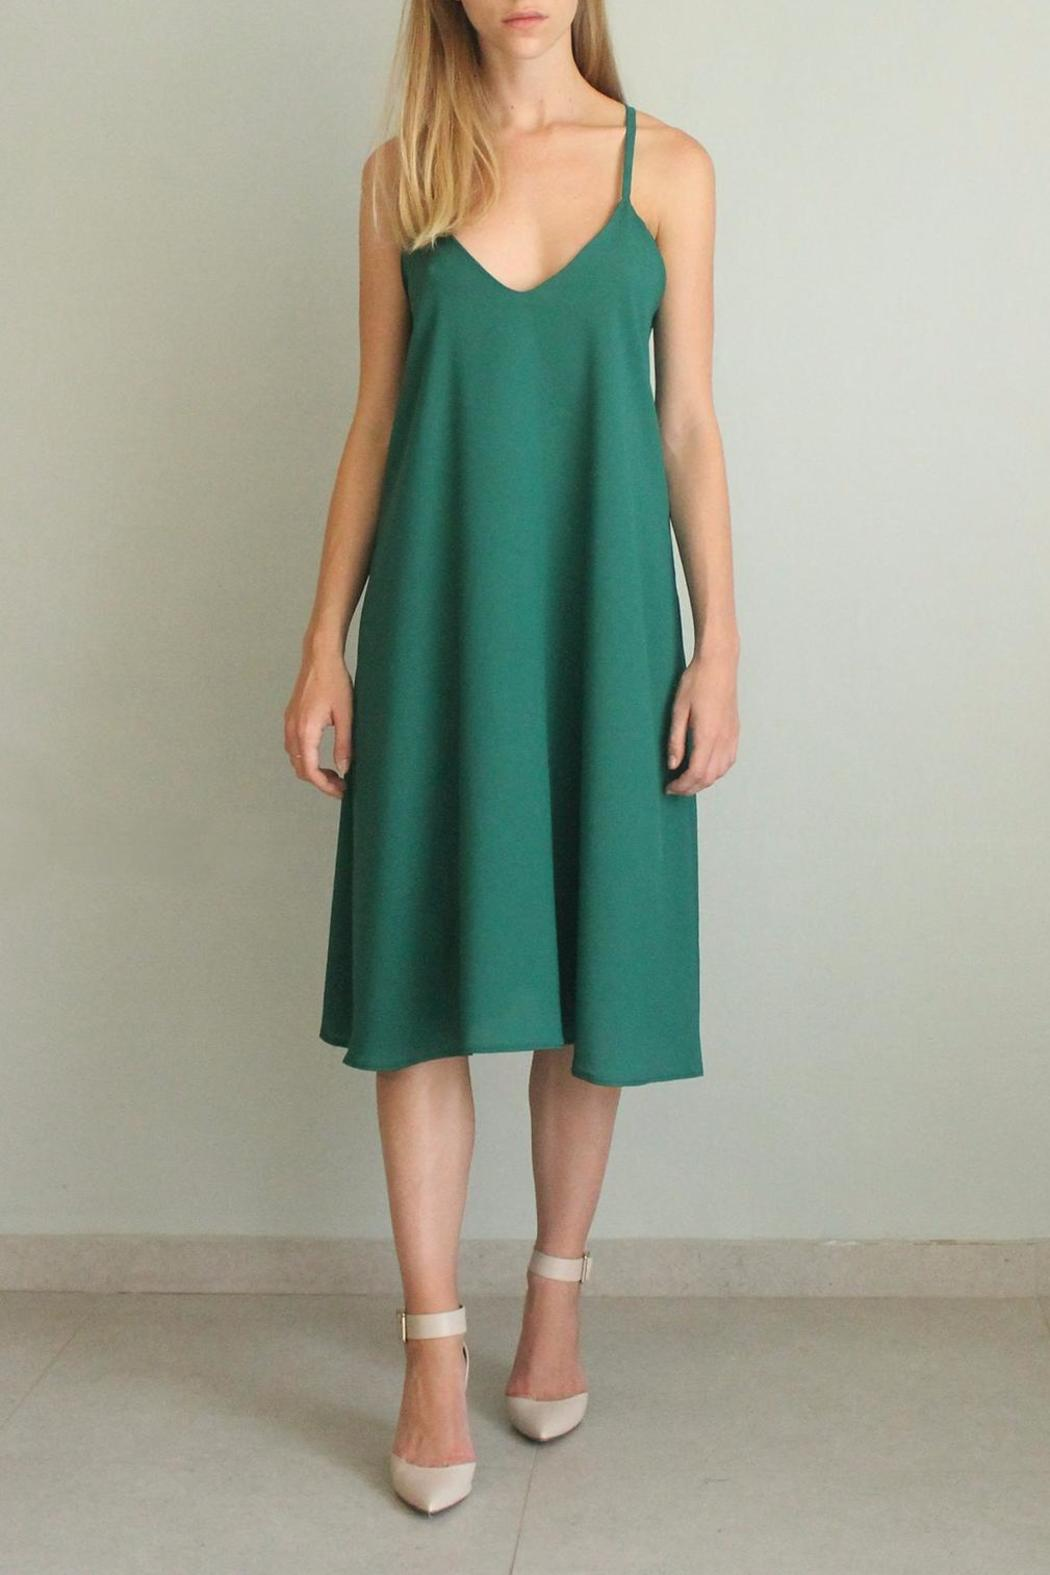 Sharon Guy Fashion Studio Midi Party Dress from Israel by SharonGuy ...